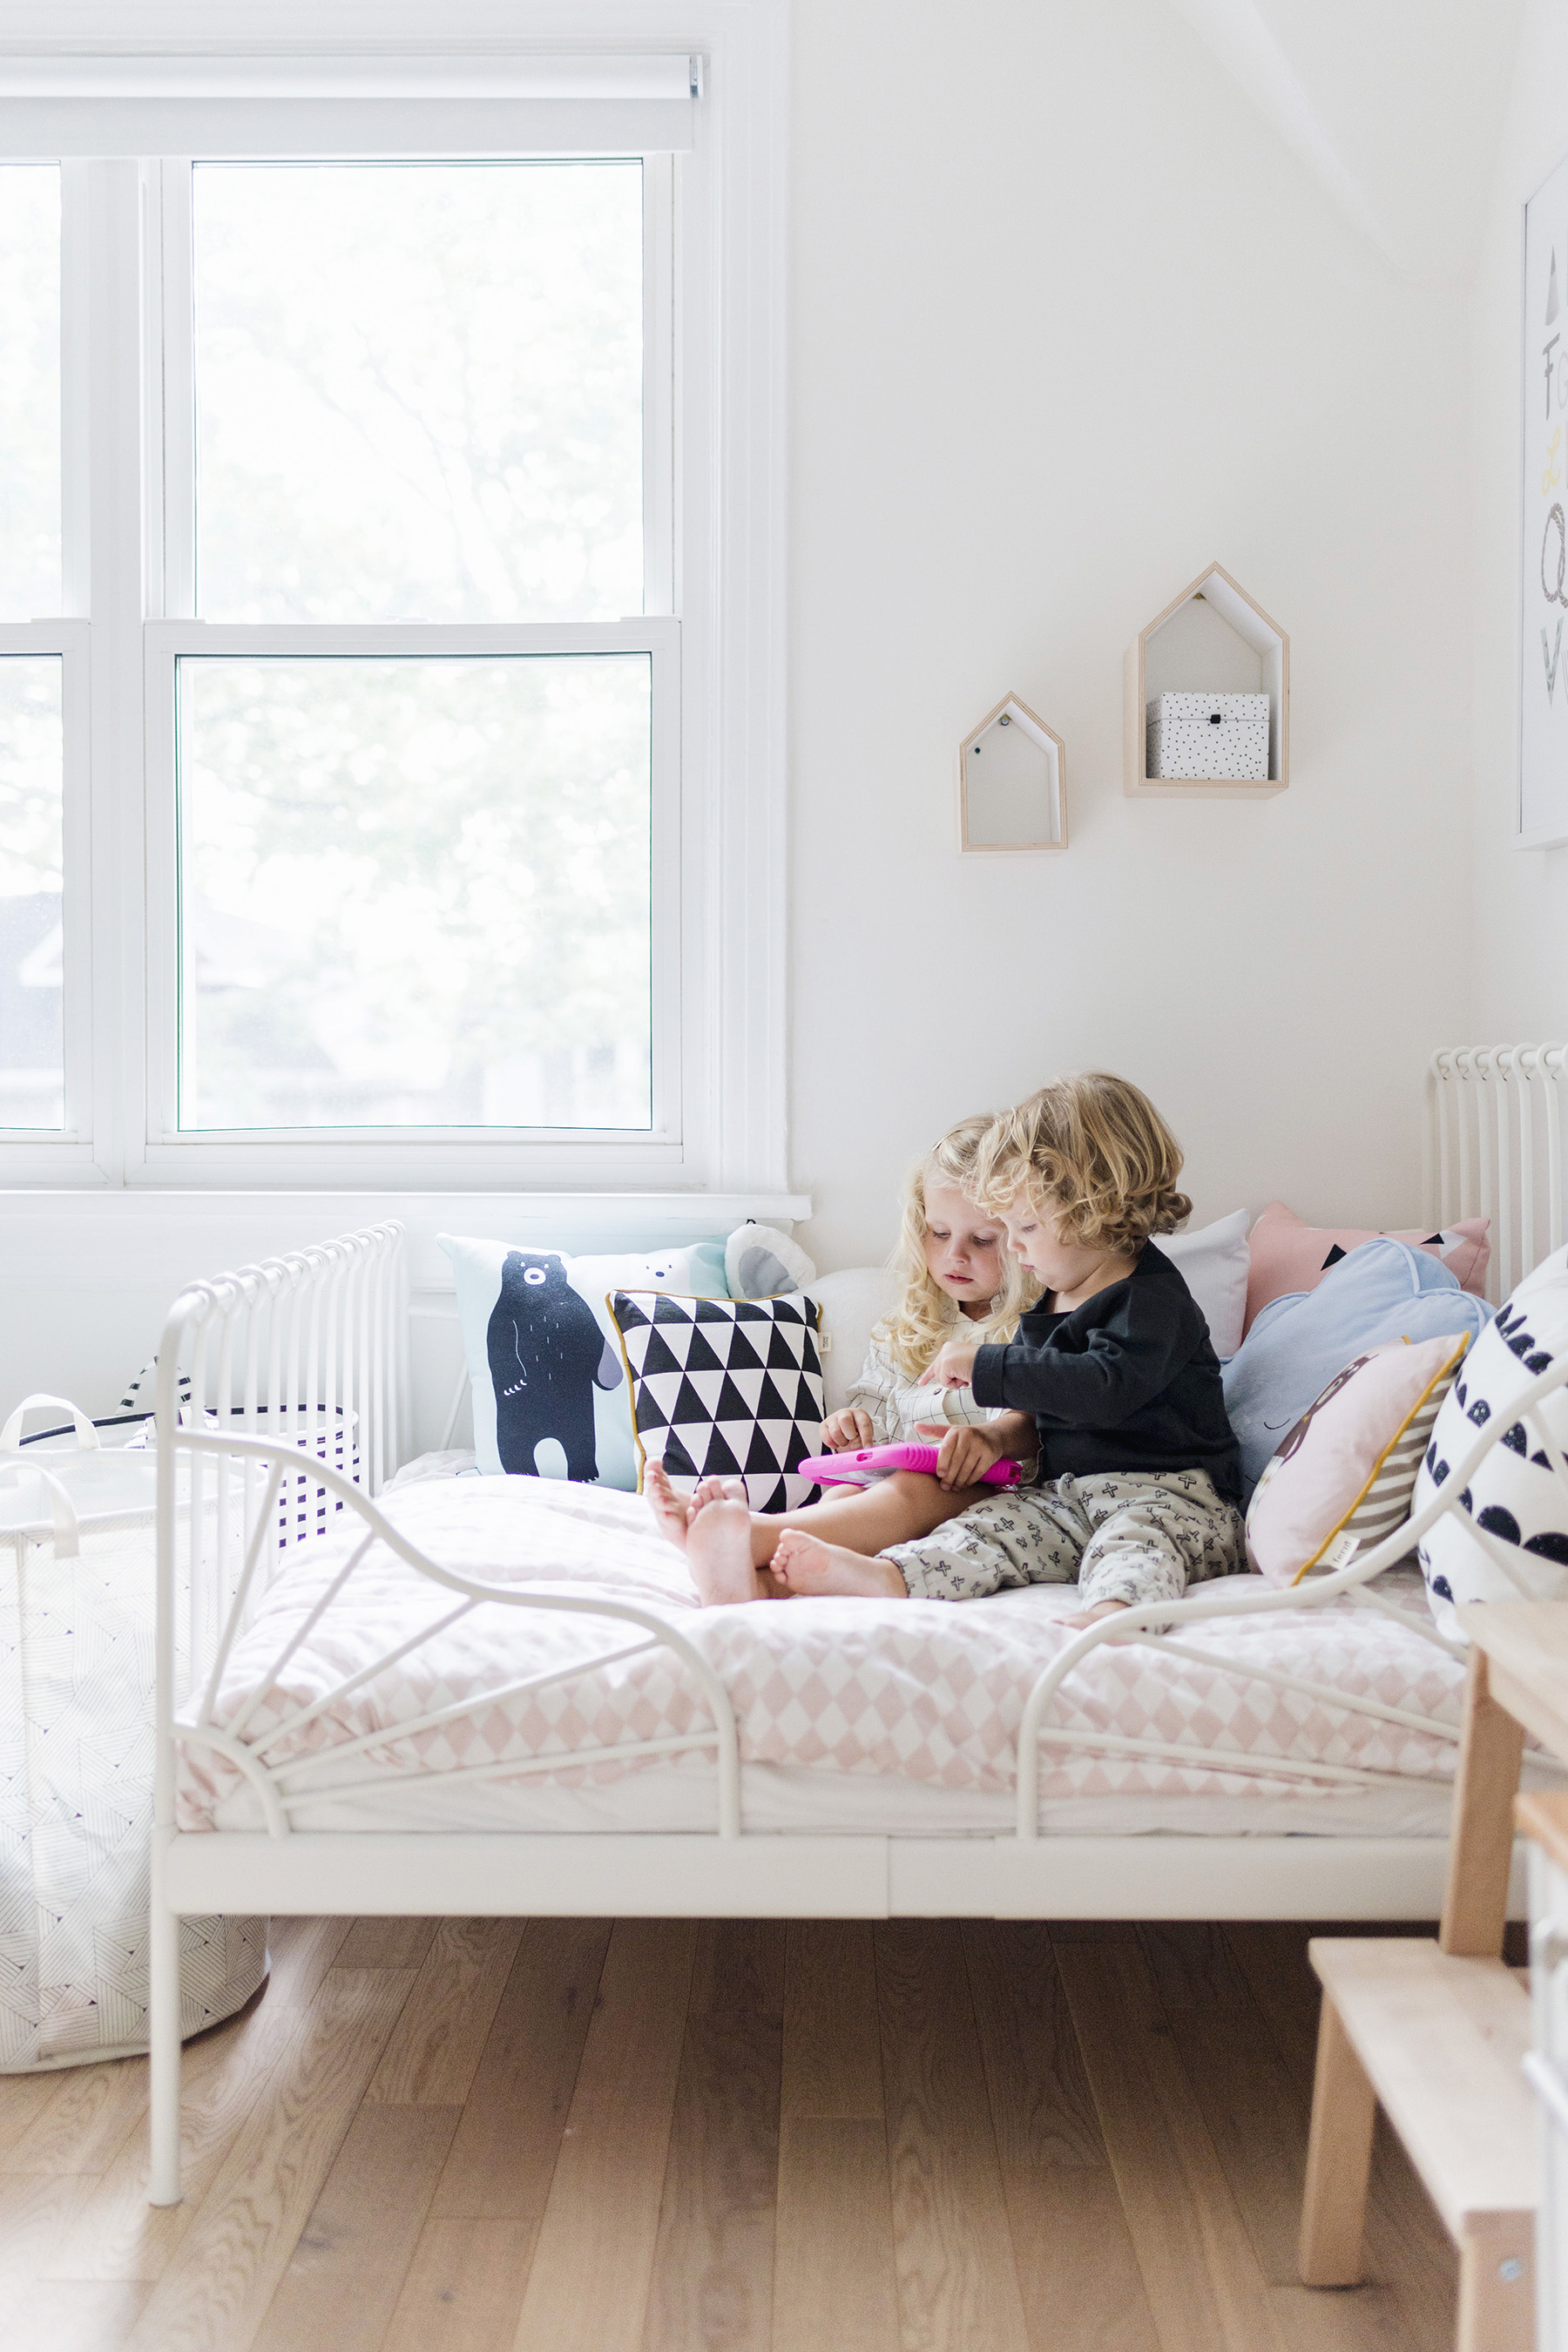 5 ways to help preschoolers learn at home | Happy Grey Lucky